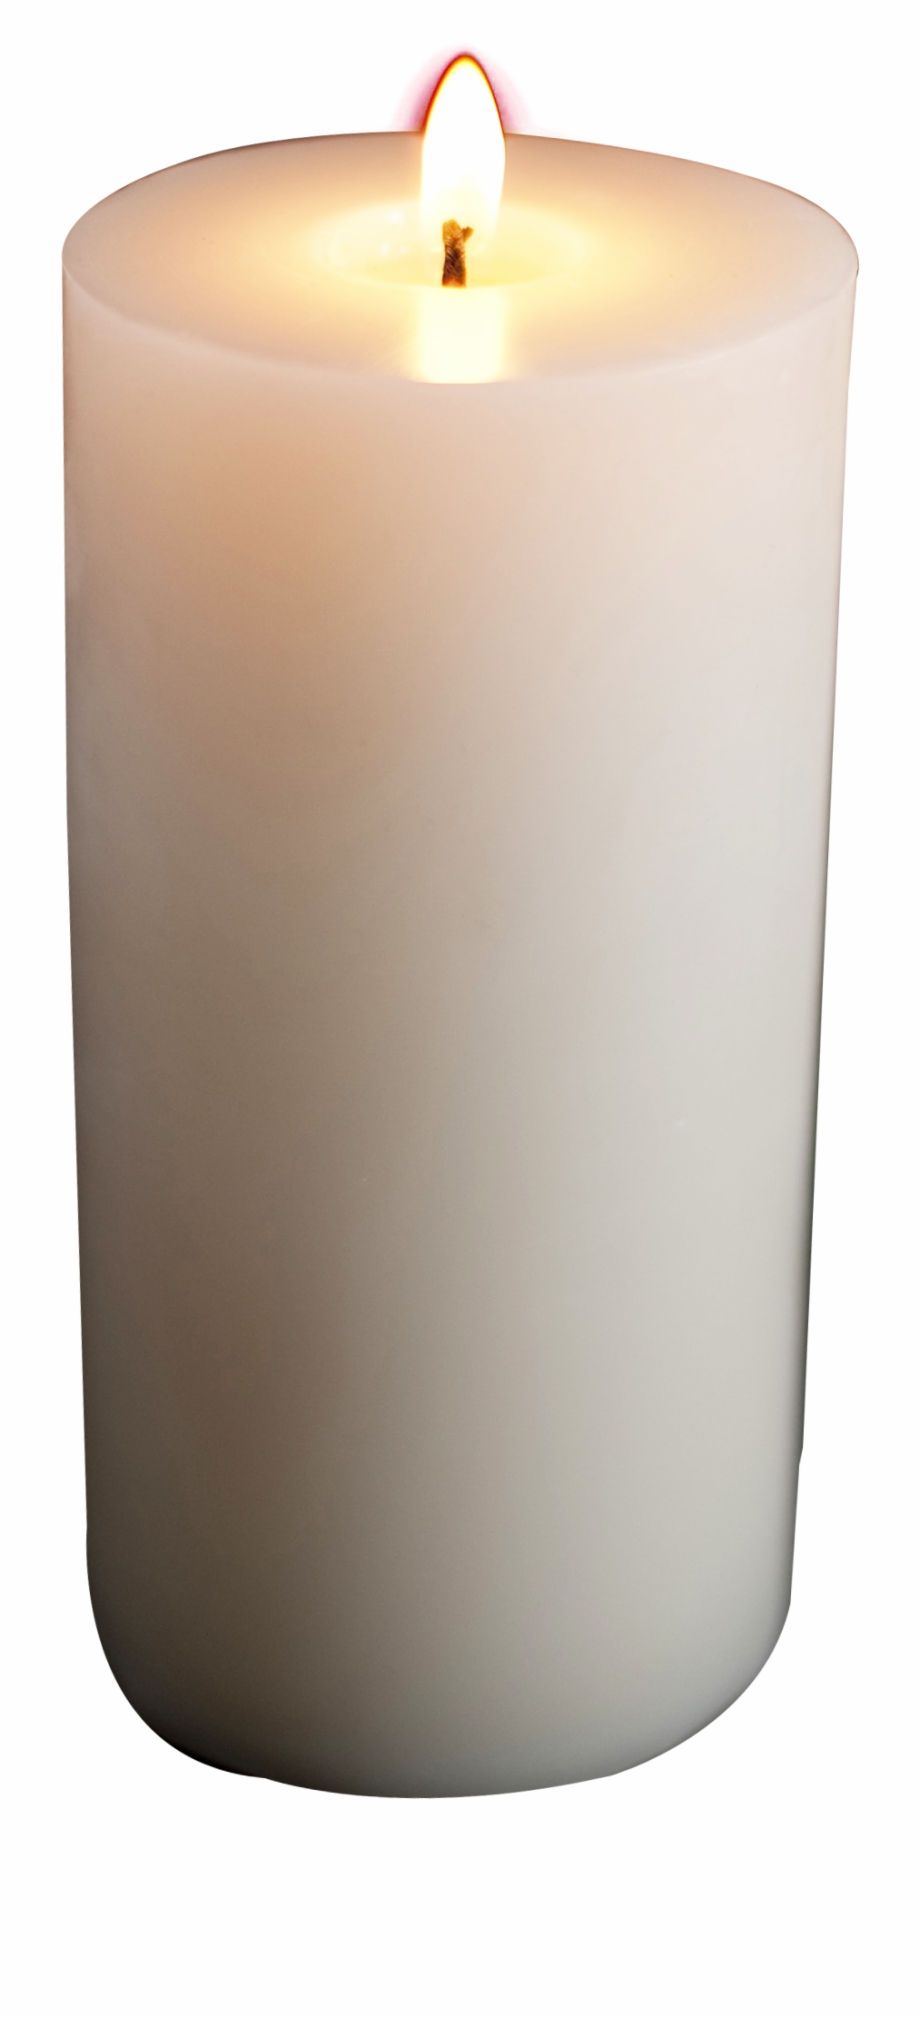 White candle bags clipart with transparent background jpg royalty free library Candle Flame Png - Transparent Candles Png Free PNG Images ... jpg royalty free library